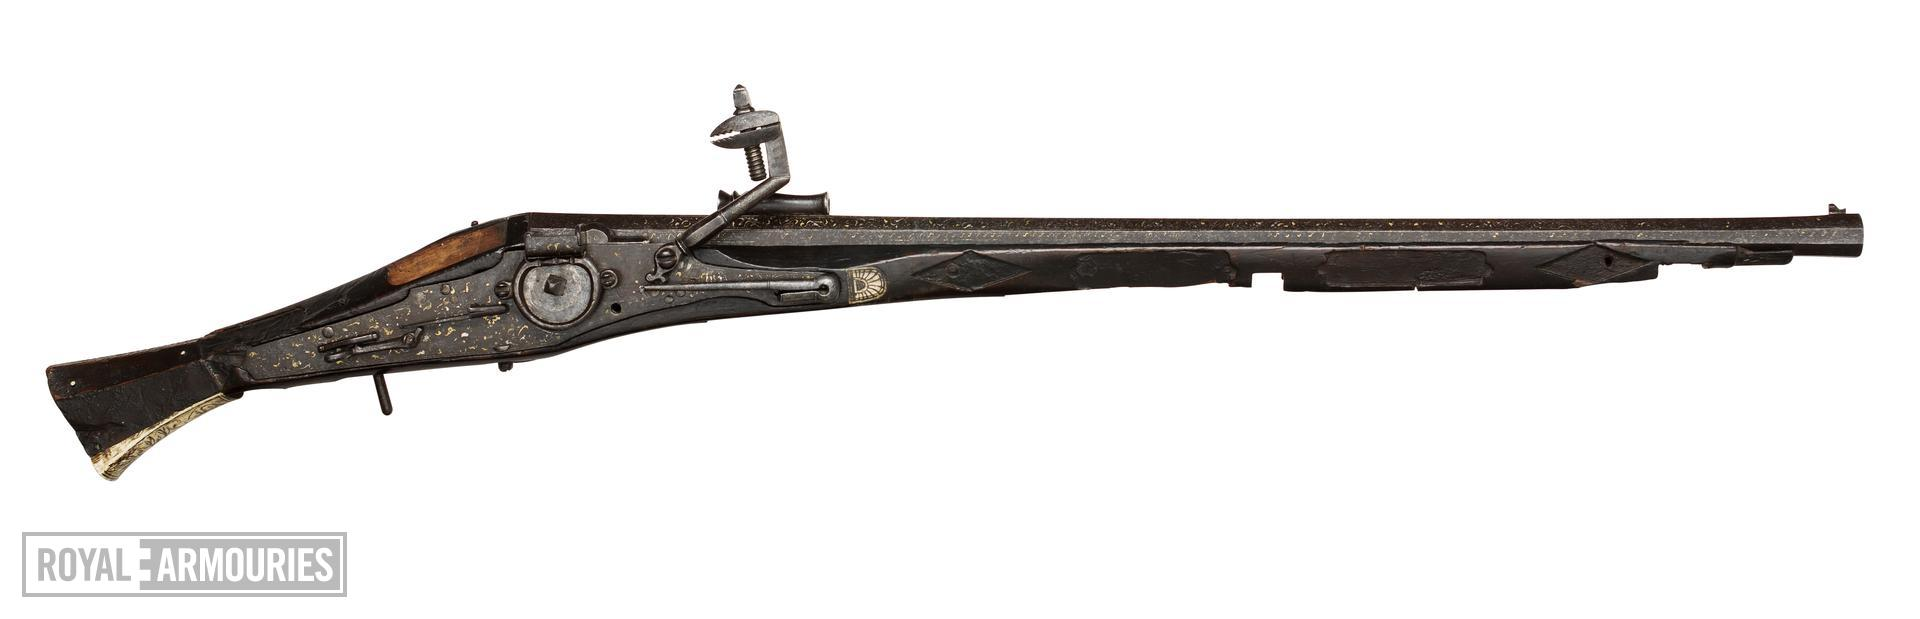 Wheellock pistol. Probably Dutch, about 1550. Possibly decorated by Damianus de Nerve or Diego de Caias (XII.10250)